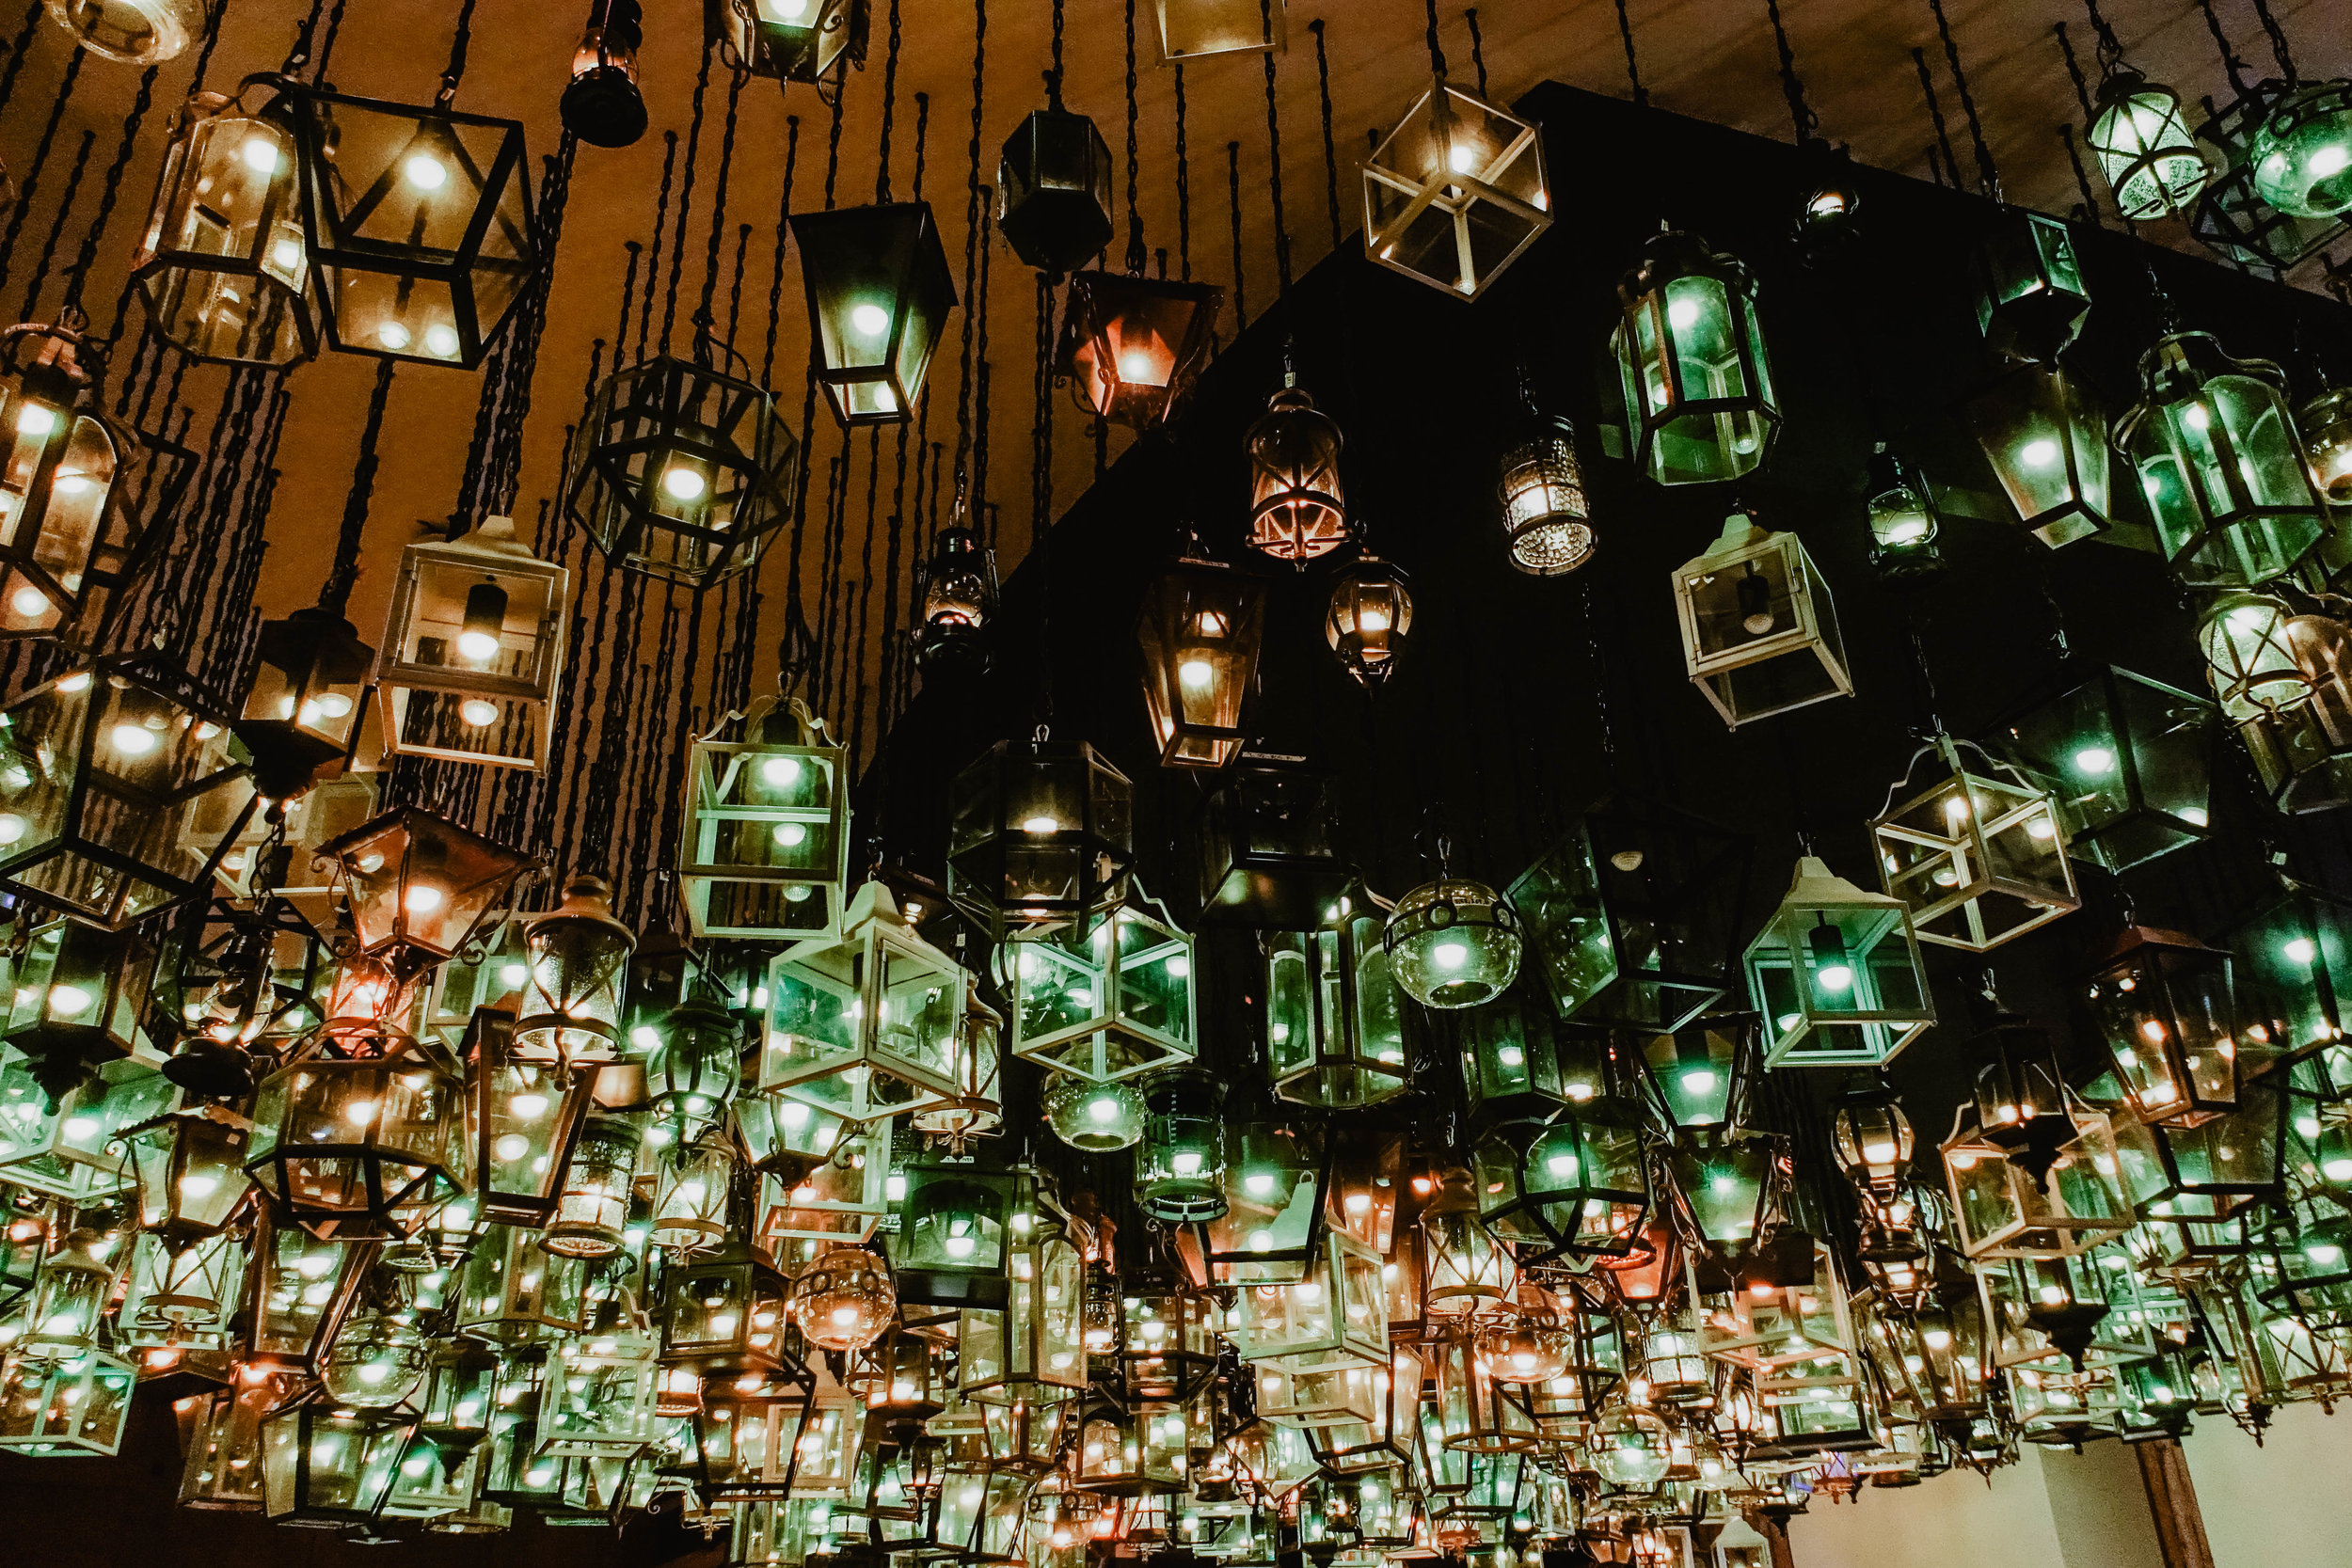 The lighting fixtures at La Cantina Restaurant in Hotel Xcaret Mexico